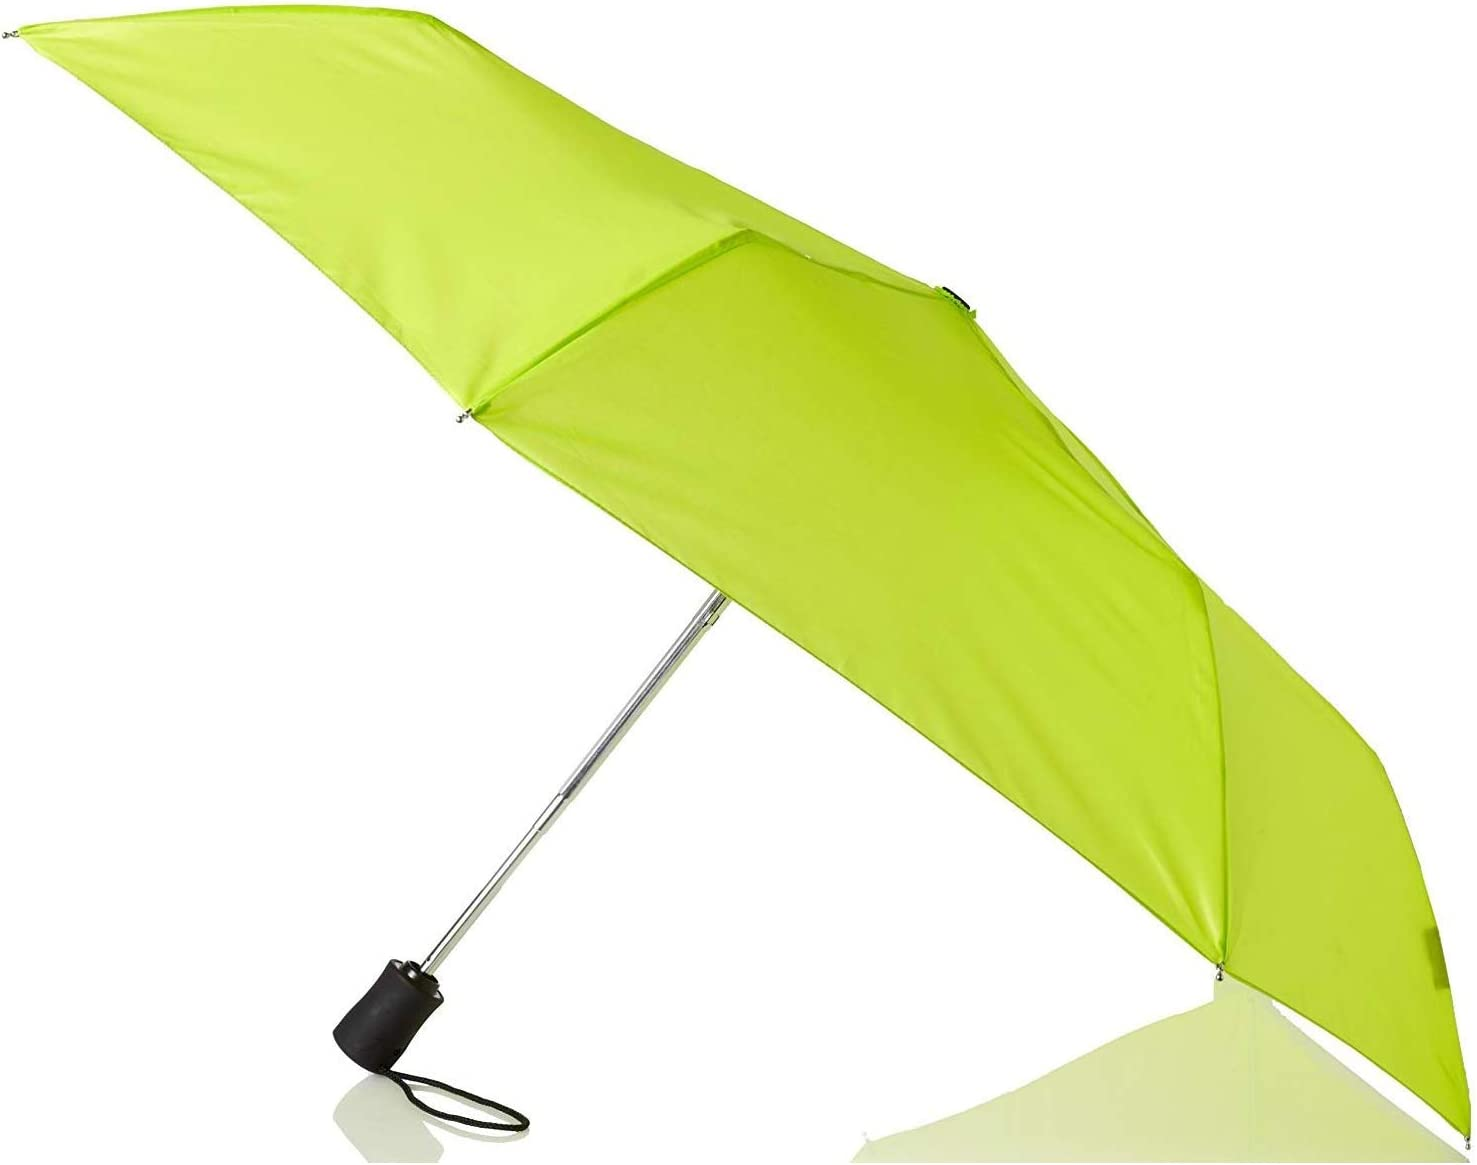 Umbrella Compact Lightweight Travel Opens Closes Automatically Lewis N Clark